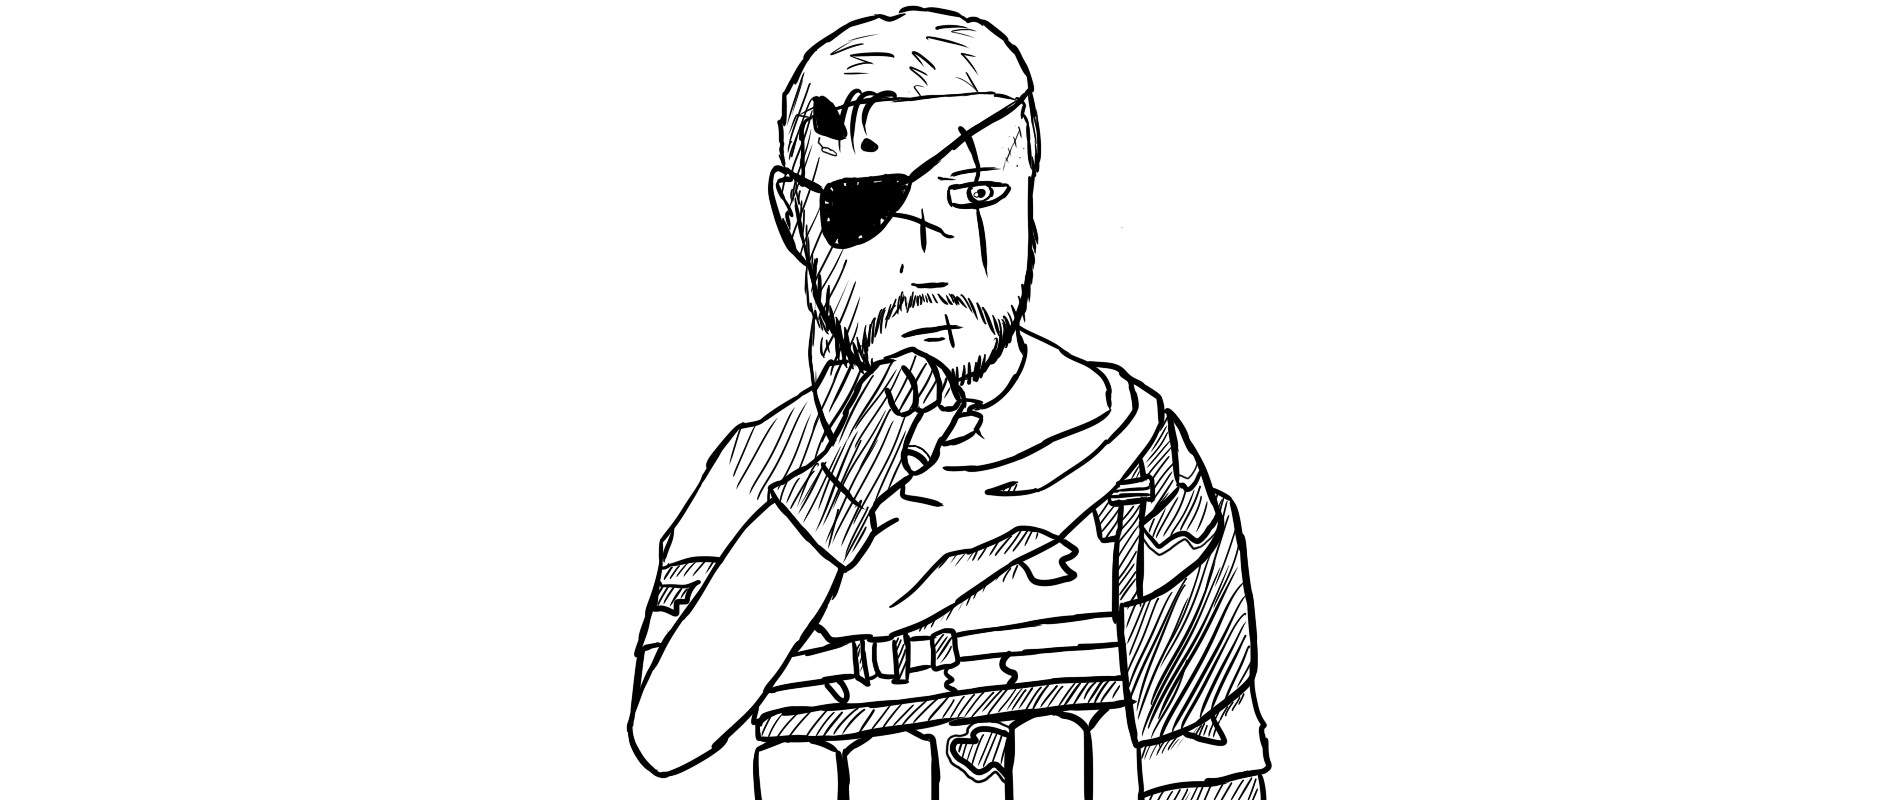 Punished Snake Sketchy Variant